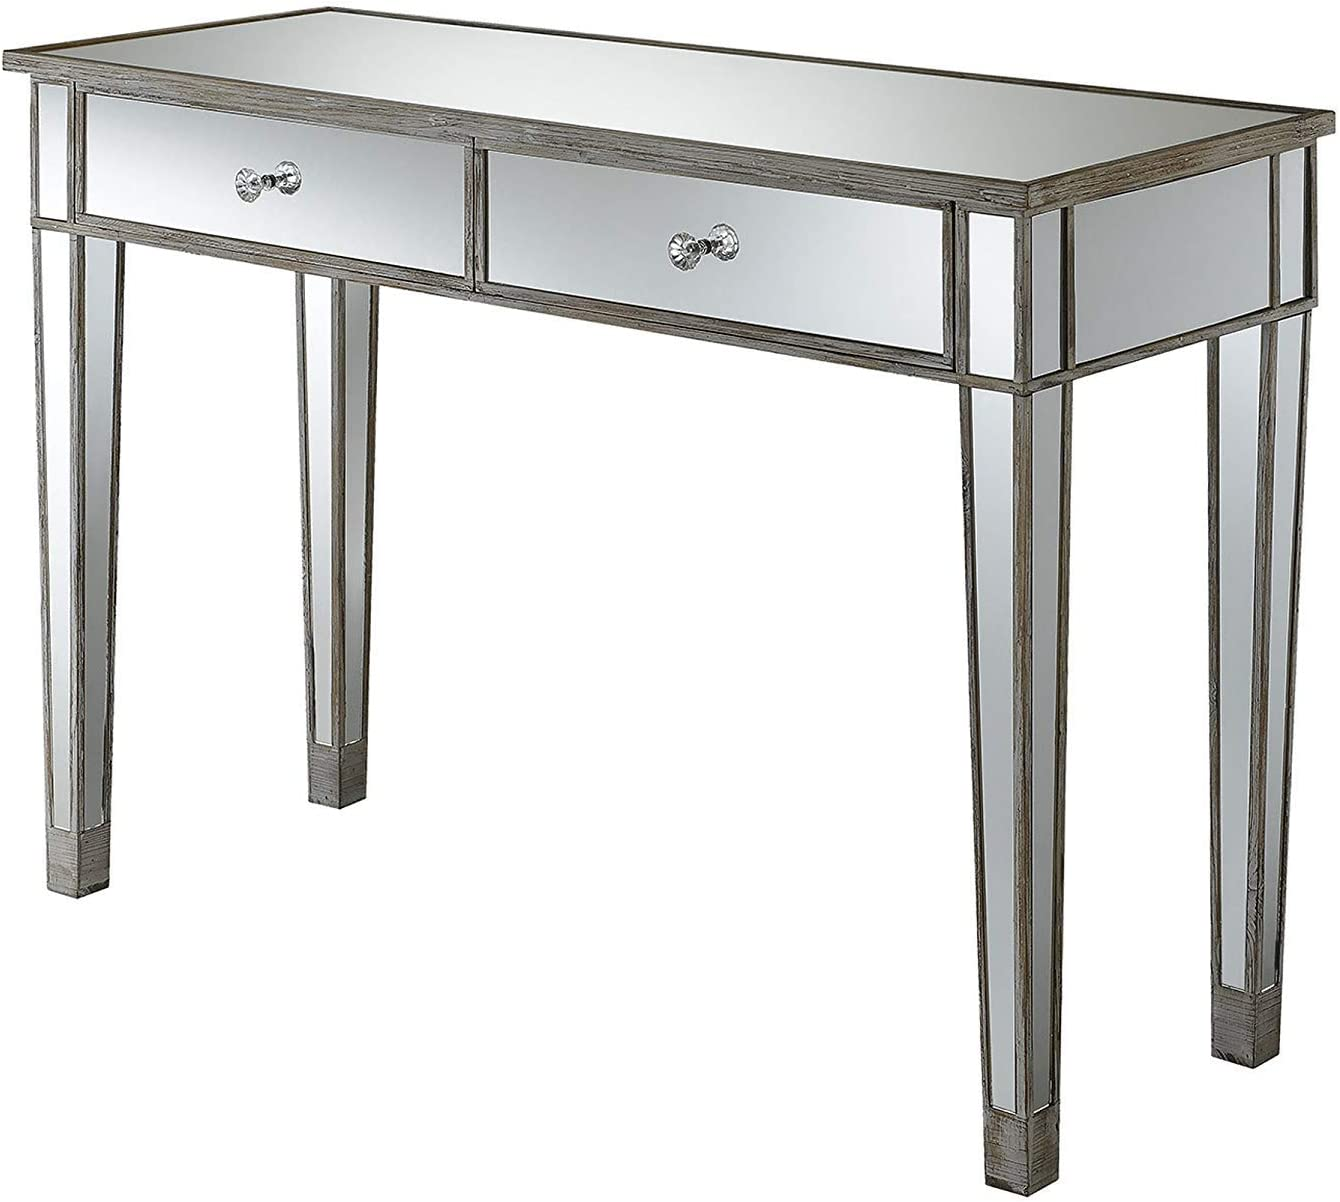 Convenience Concepts Gold Coast Mirrored Desk, Weathered White / Mirror